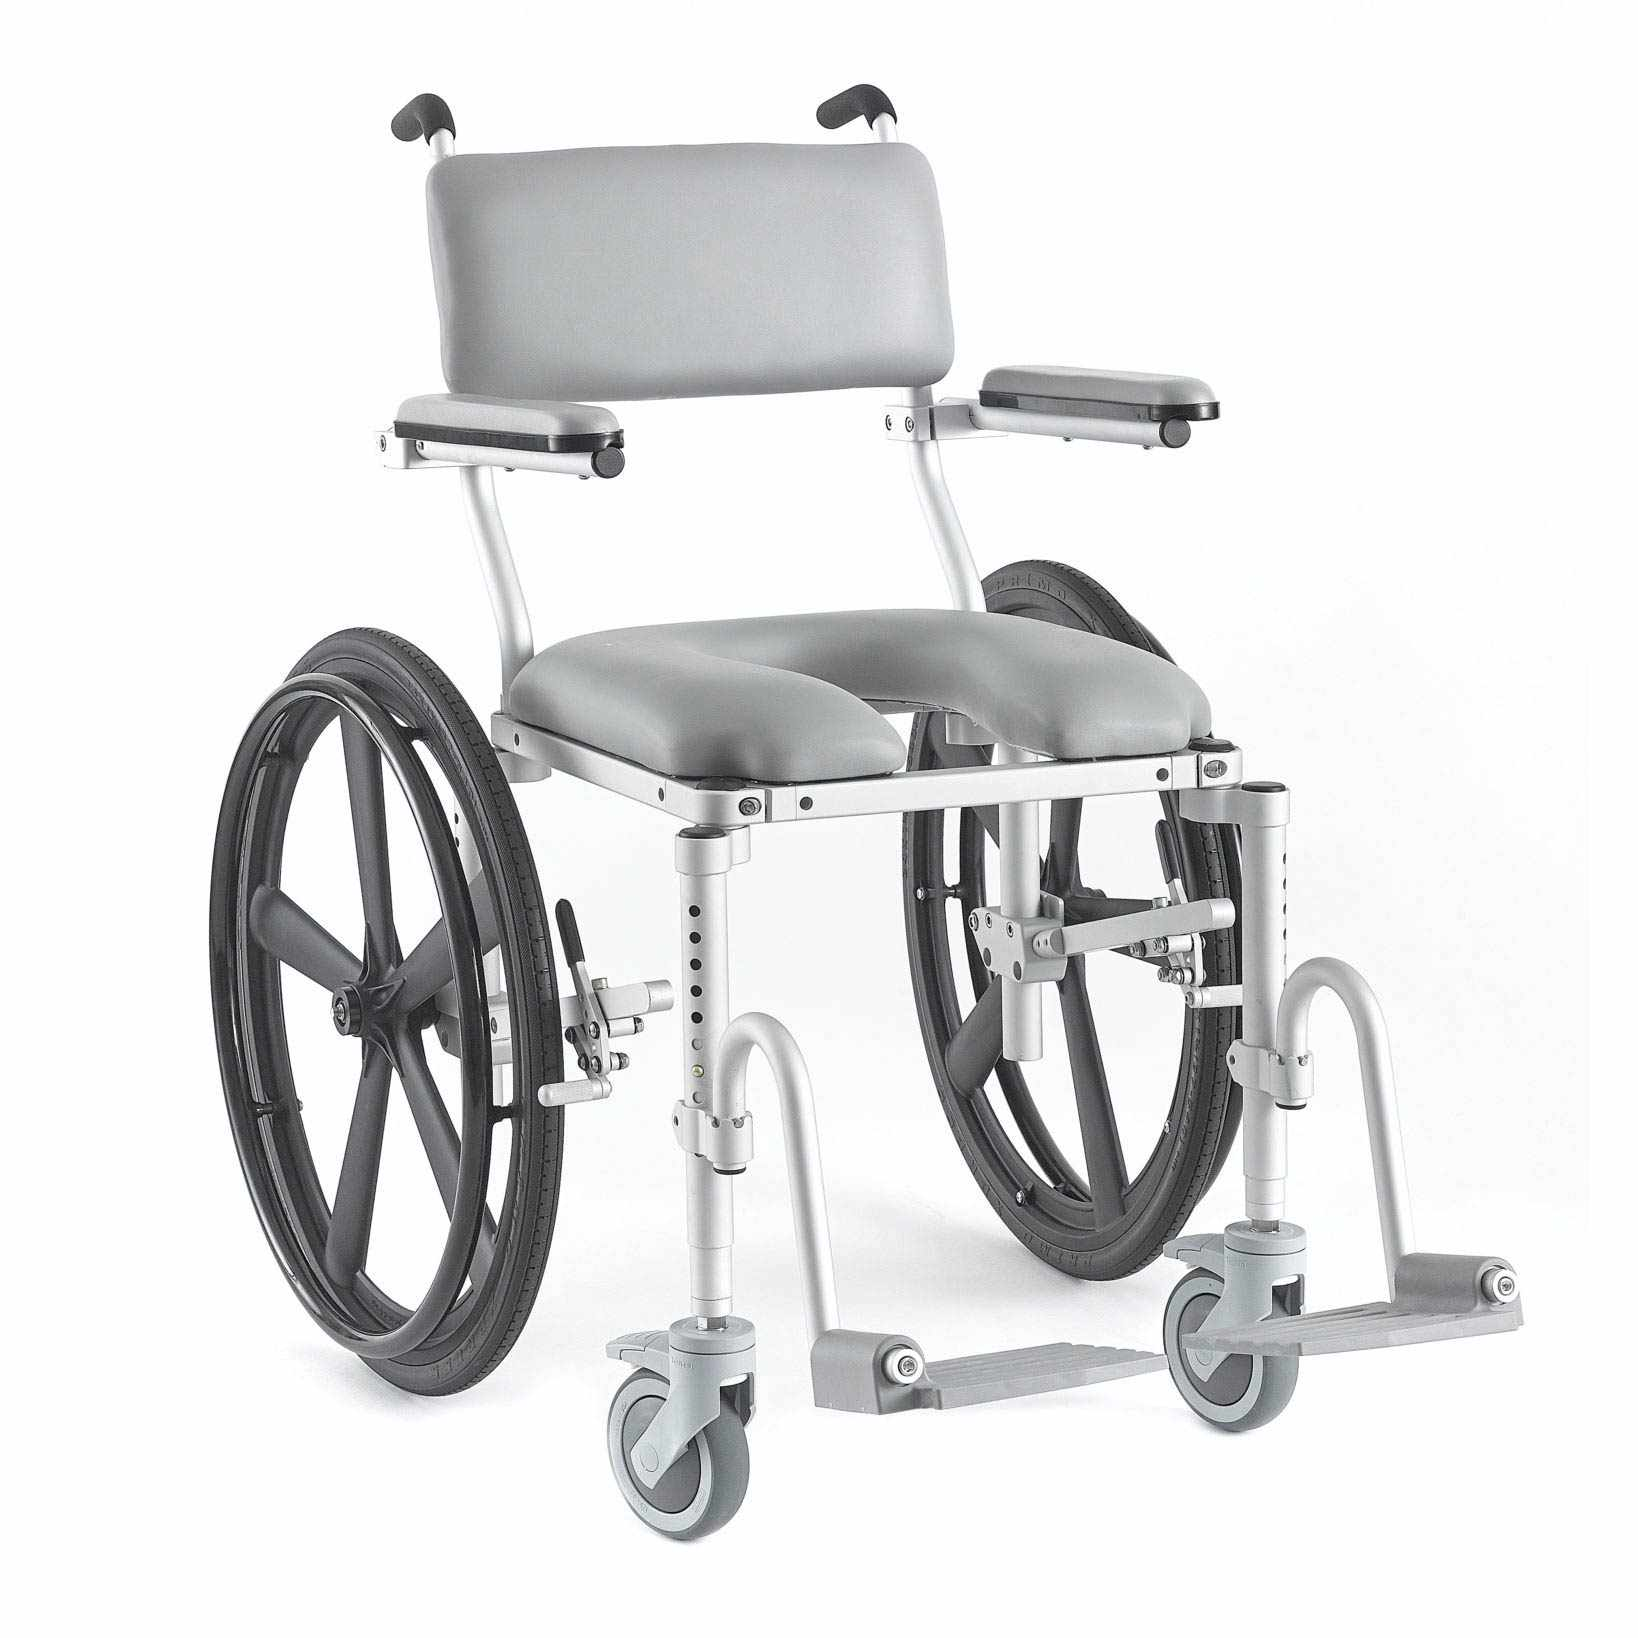 Nuprodx 4024 Roll-In Shower Commode Chair   Medicaleshop